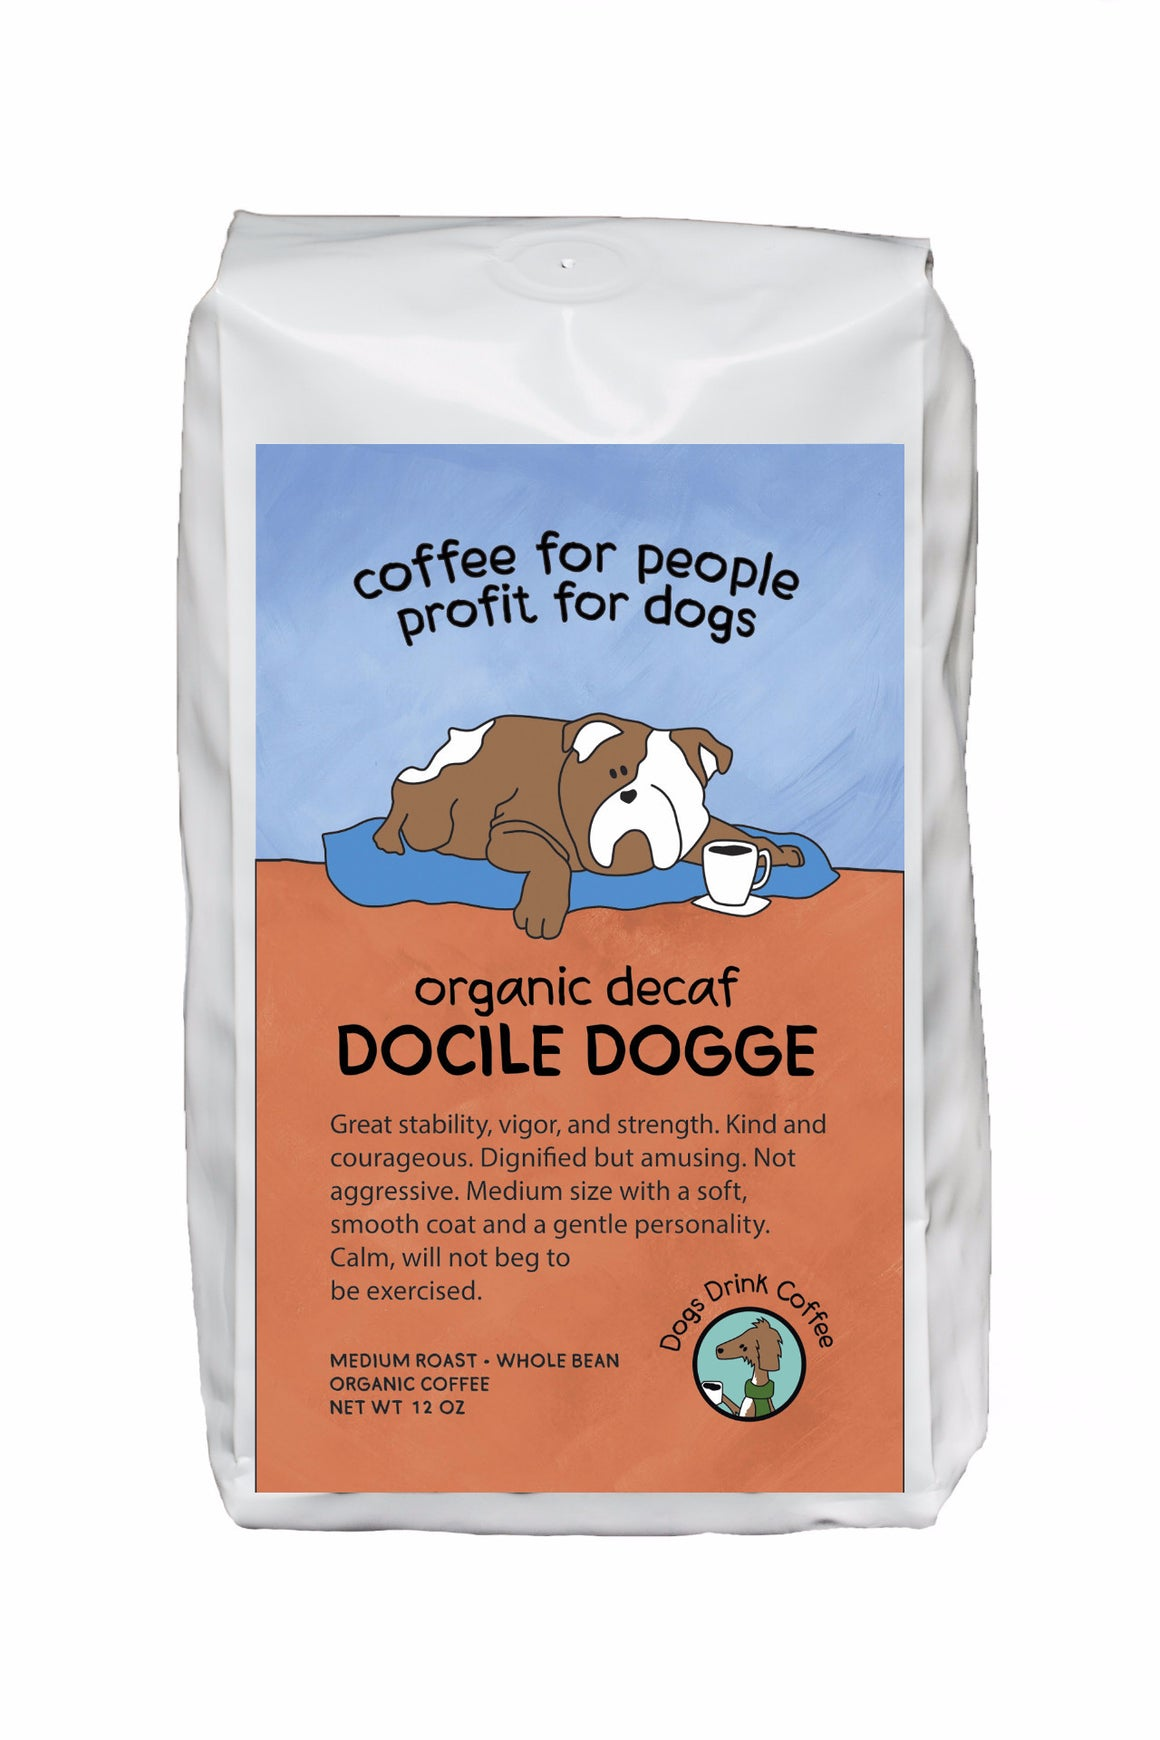 Docile Dogge Organic Decaf